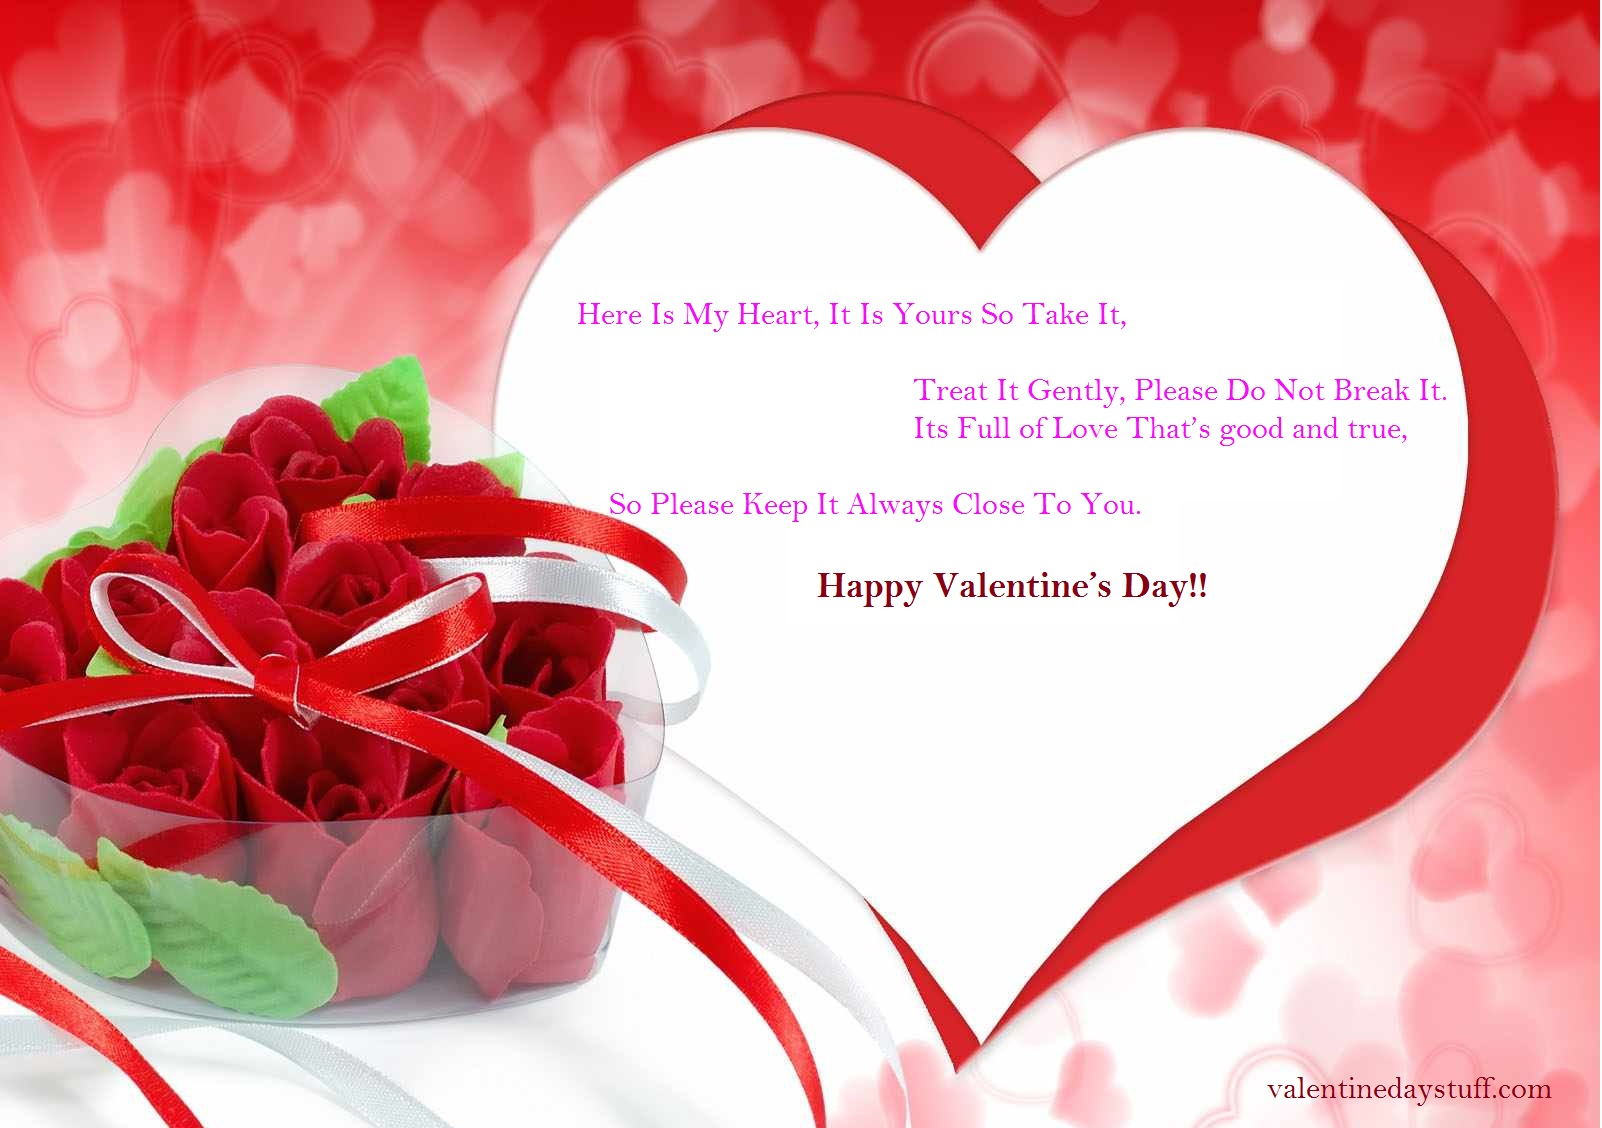 Happy Valentines Day Greeting Cards 2017 Free Download Techicy – Greeting Cards of Valentine Day